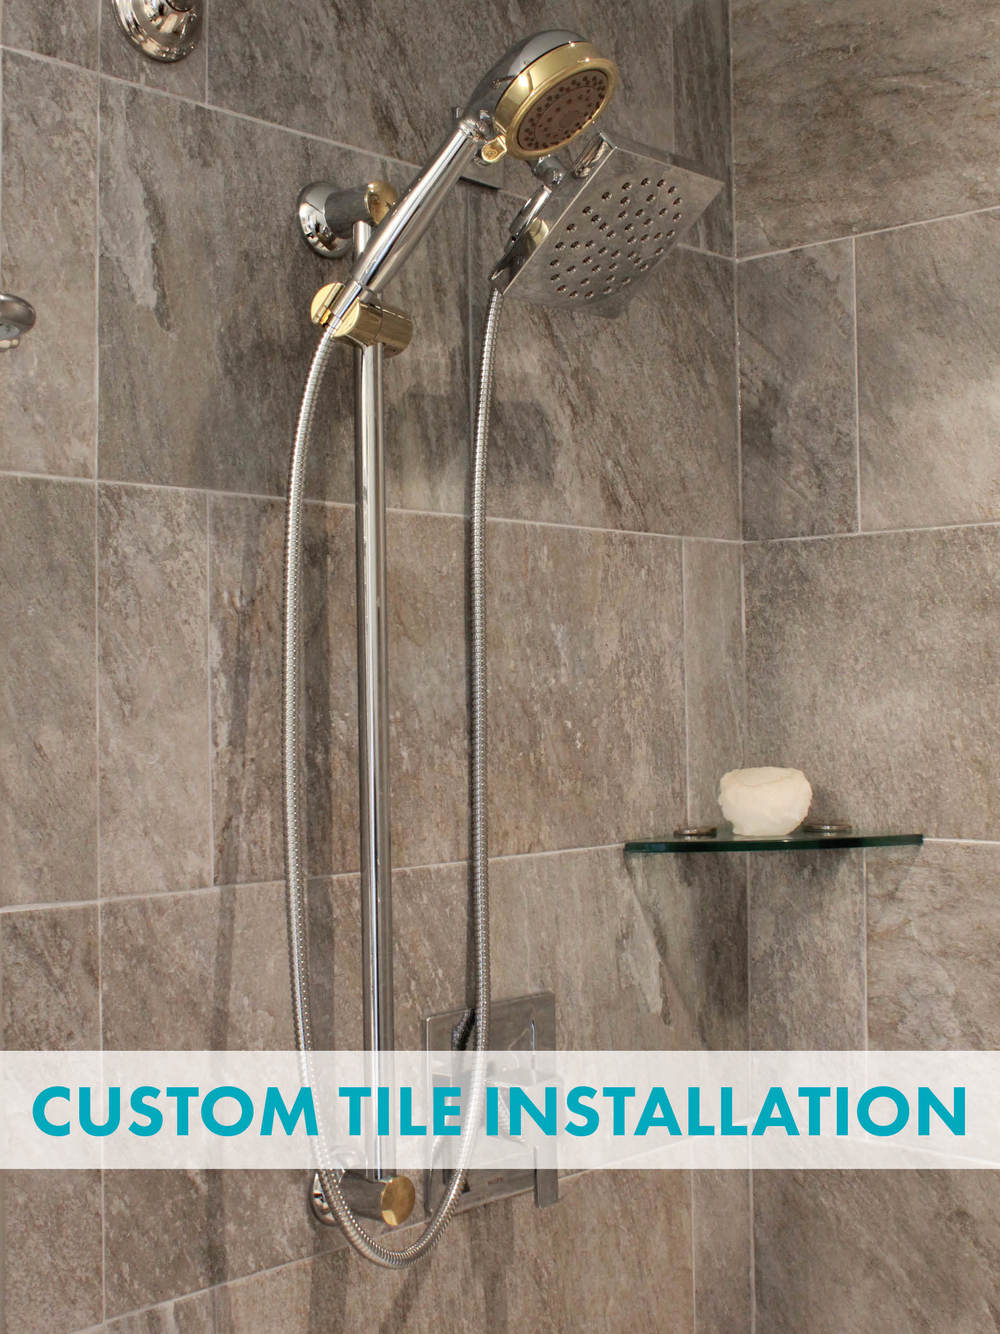 custom tile installation.jpg